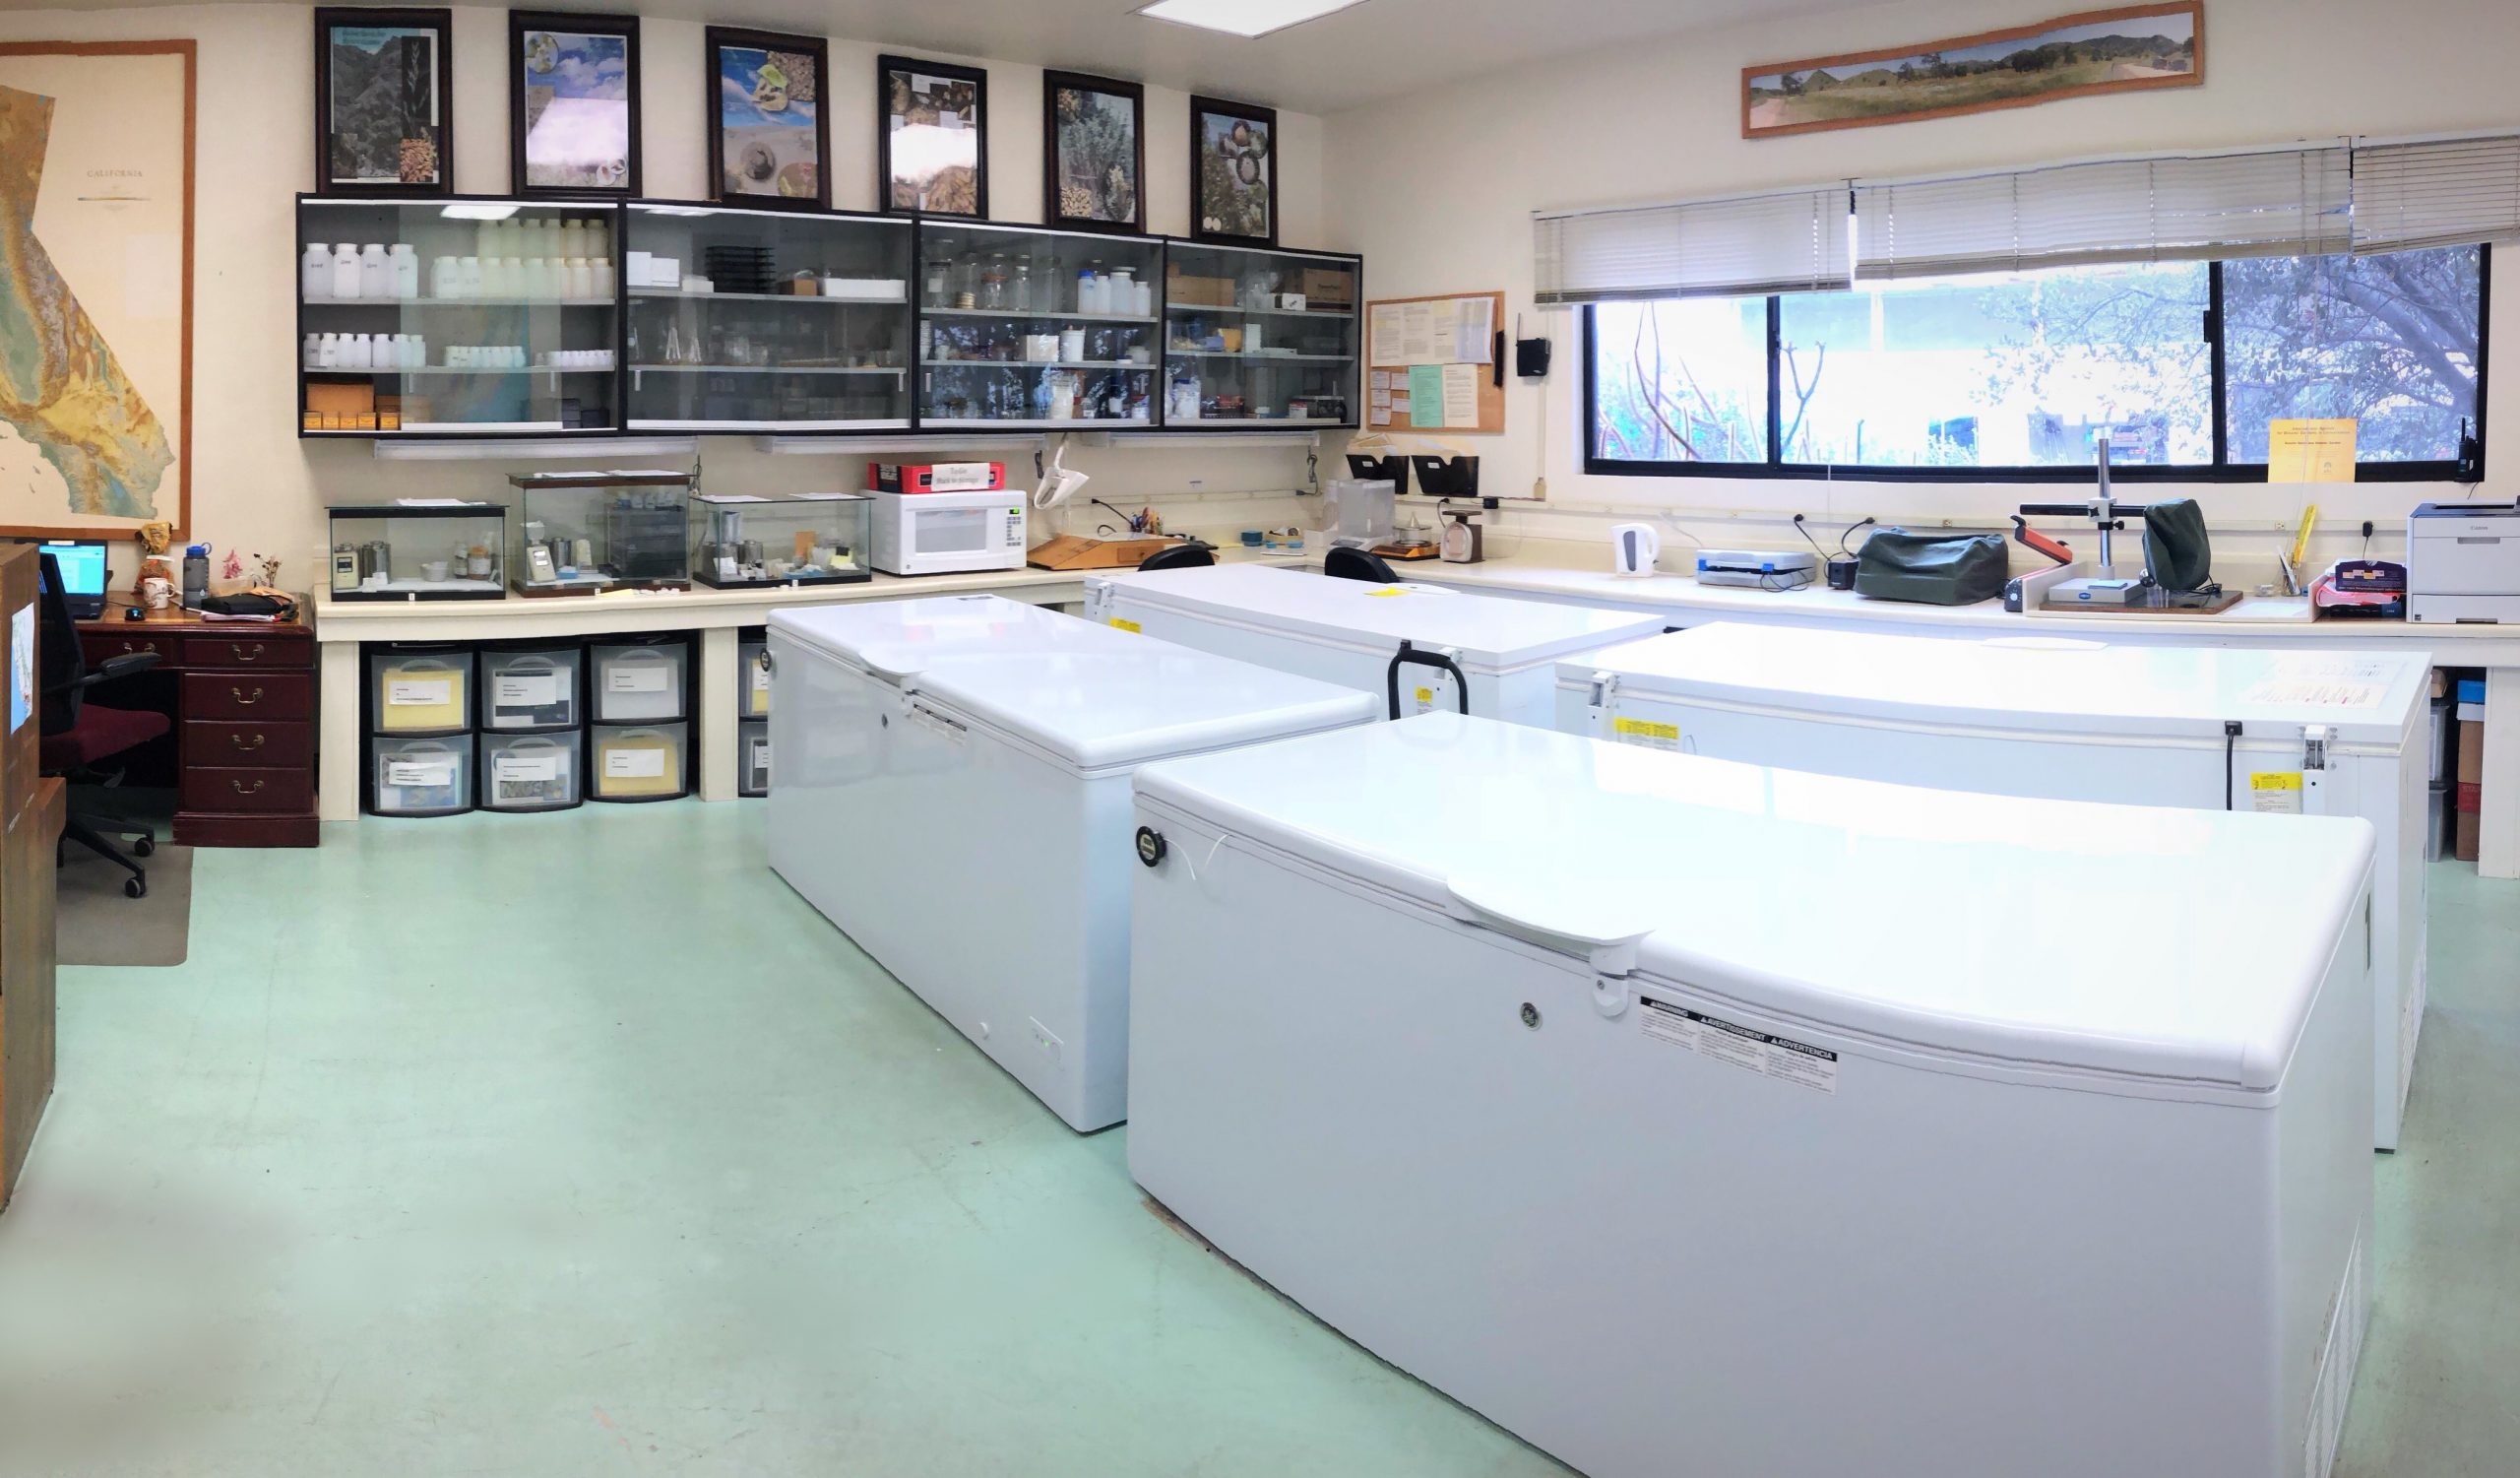 Rancho Santa Ana's California Seed Bank is home to many of the collections, made by both RSA's team and collaborating partners.